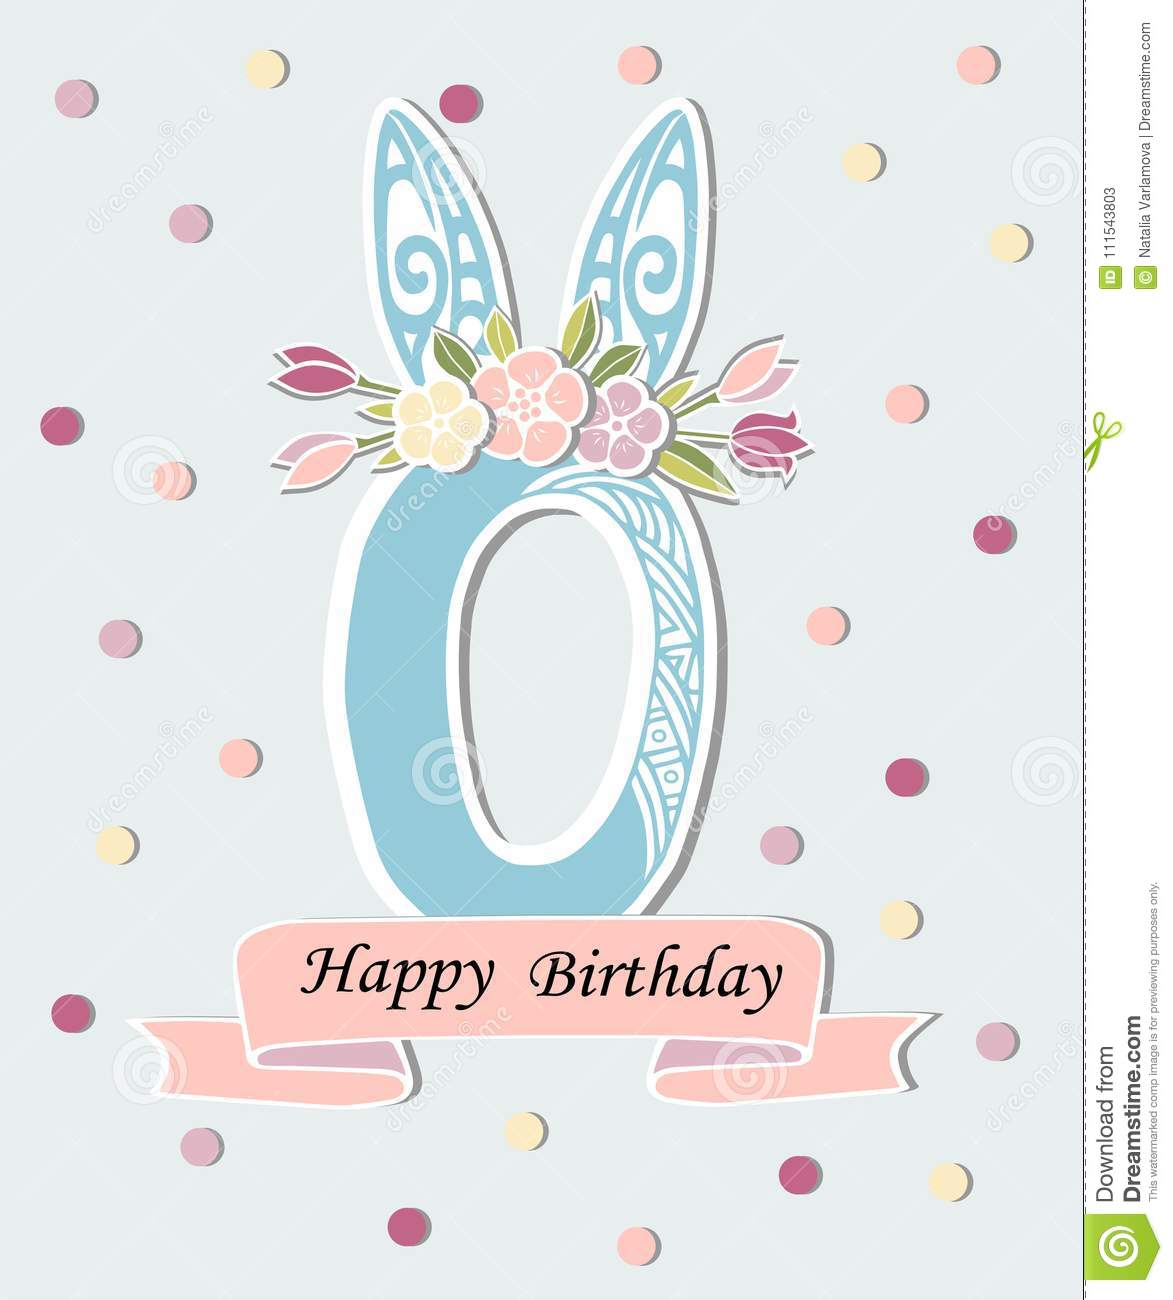 Vector Illustration With Number Zero Bunny Ears And Floral Wreath